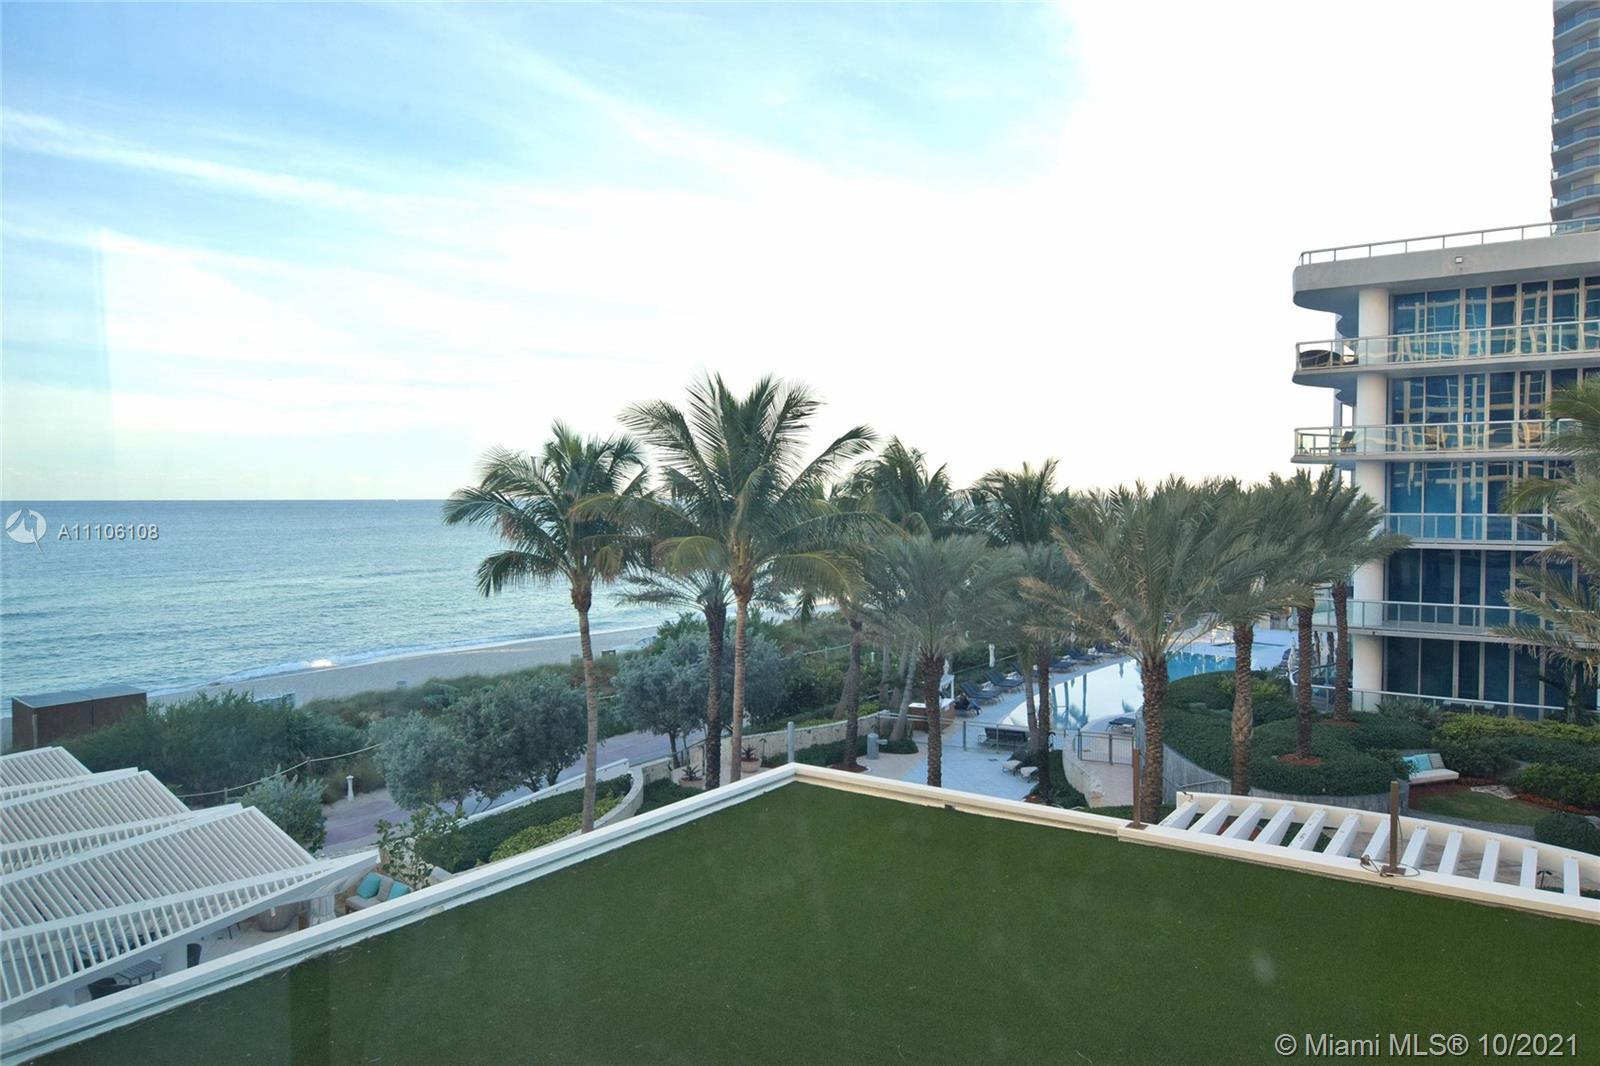 Carillon Hotel & Spa , a premier oceanfront resort. Ocean & Palm Court views from floor-to-ceiling w